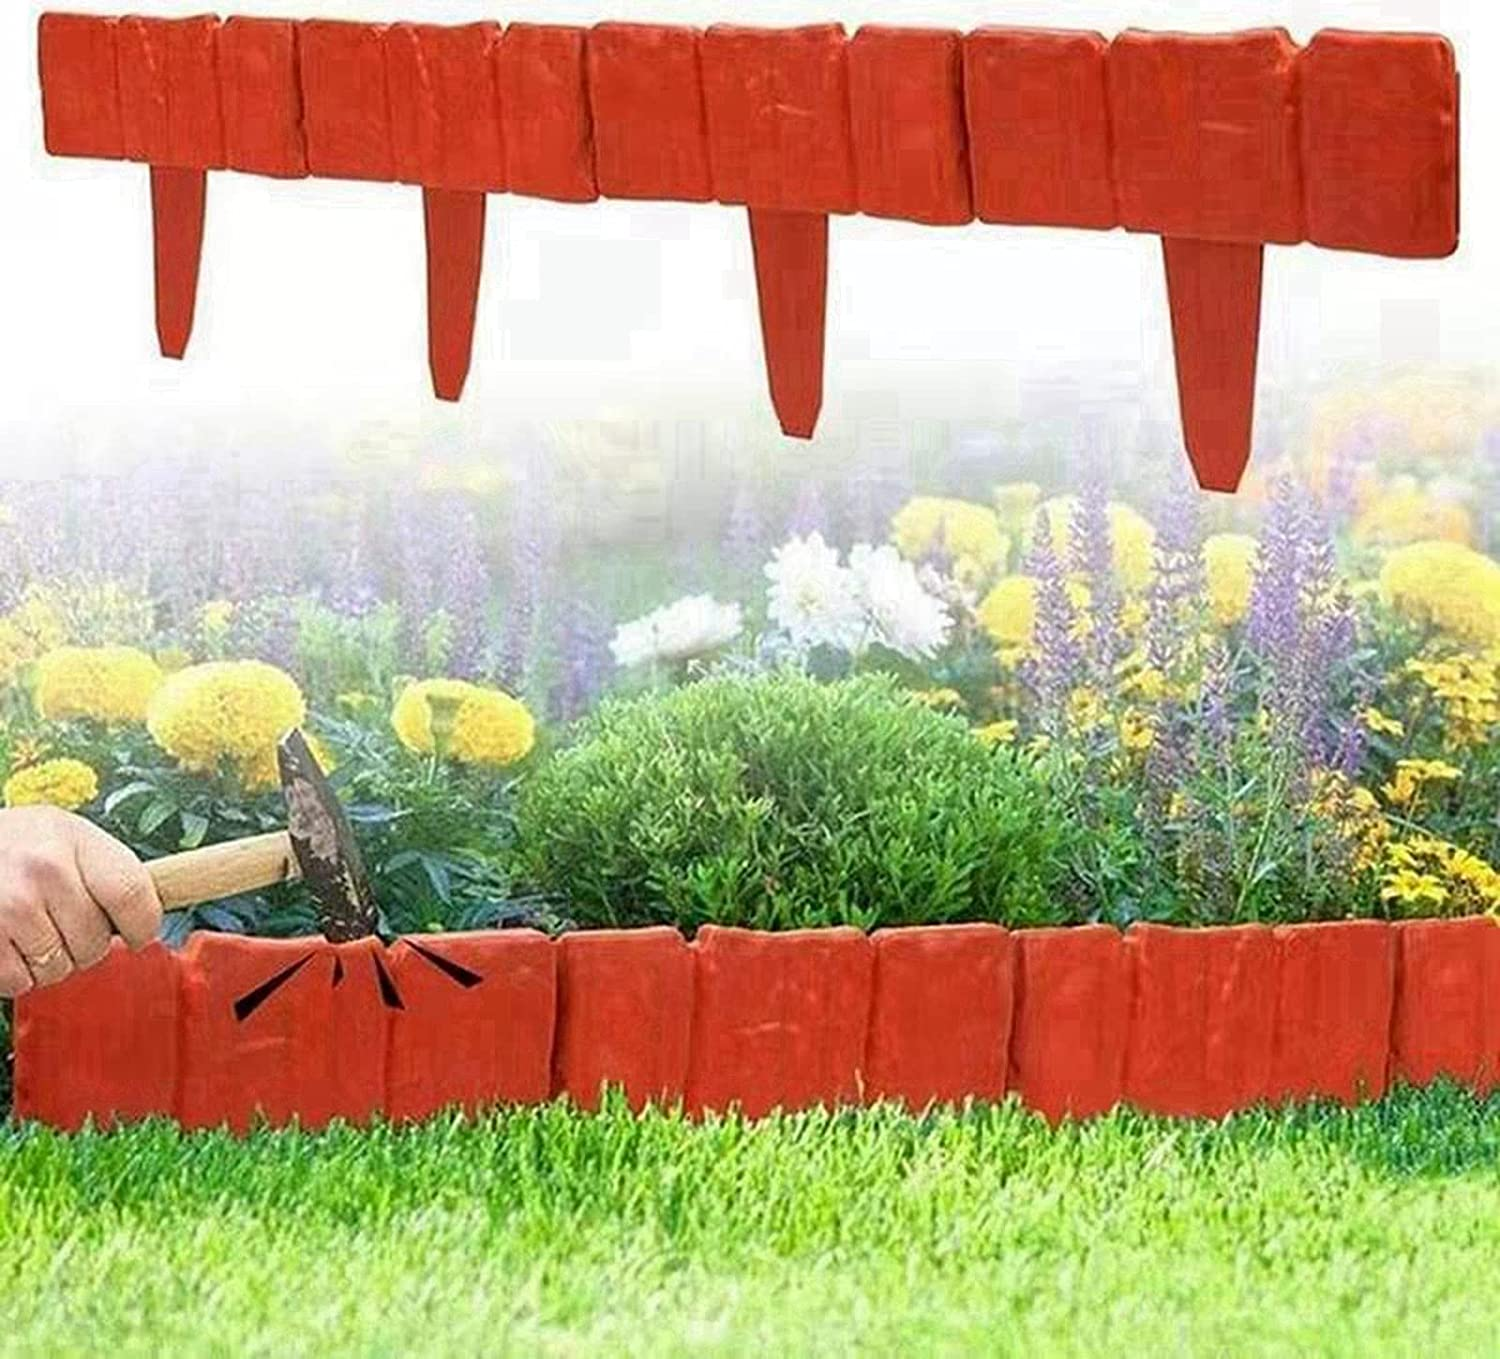 WYNH Lawn Edging and Spring new work one after another Landscape Decorative Flower DIY Border store Gras